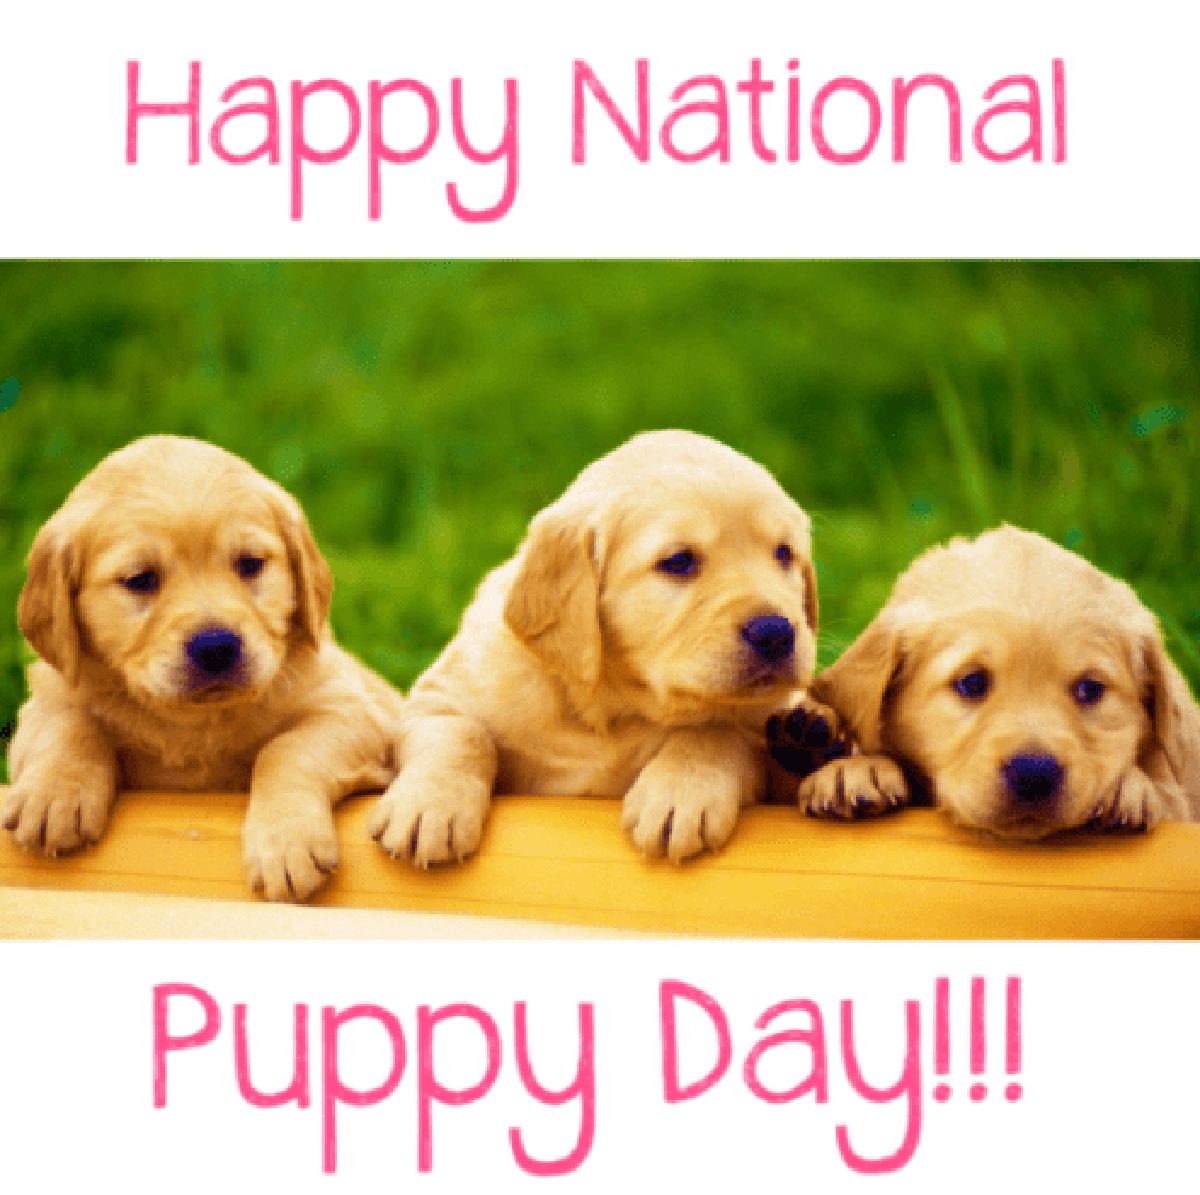 Happy National Puppy Day From Sofi Friends Funtastic Dog Clothes Patterns For The Little Dog Https Www Etsy Com In 2020 National Puppy Day Puppies Puppy Day